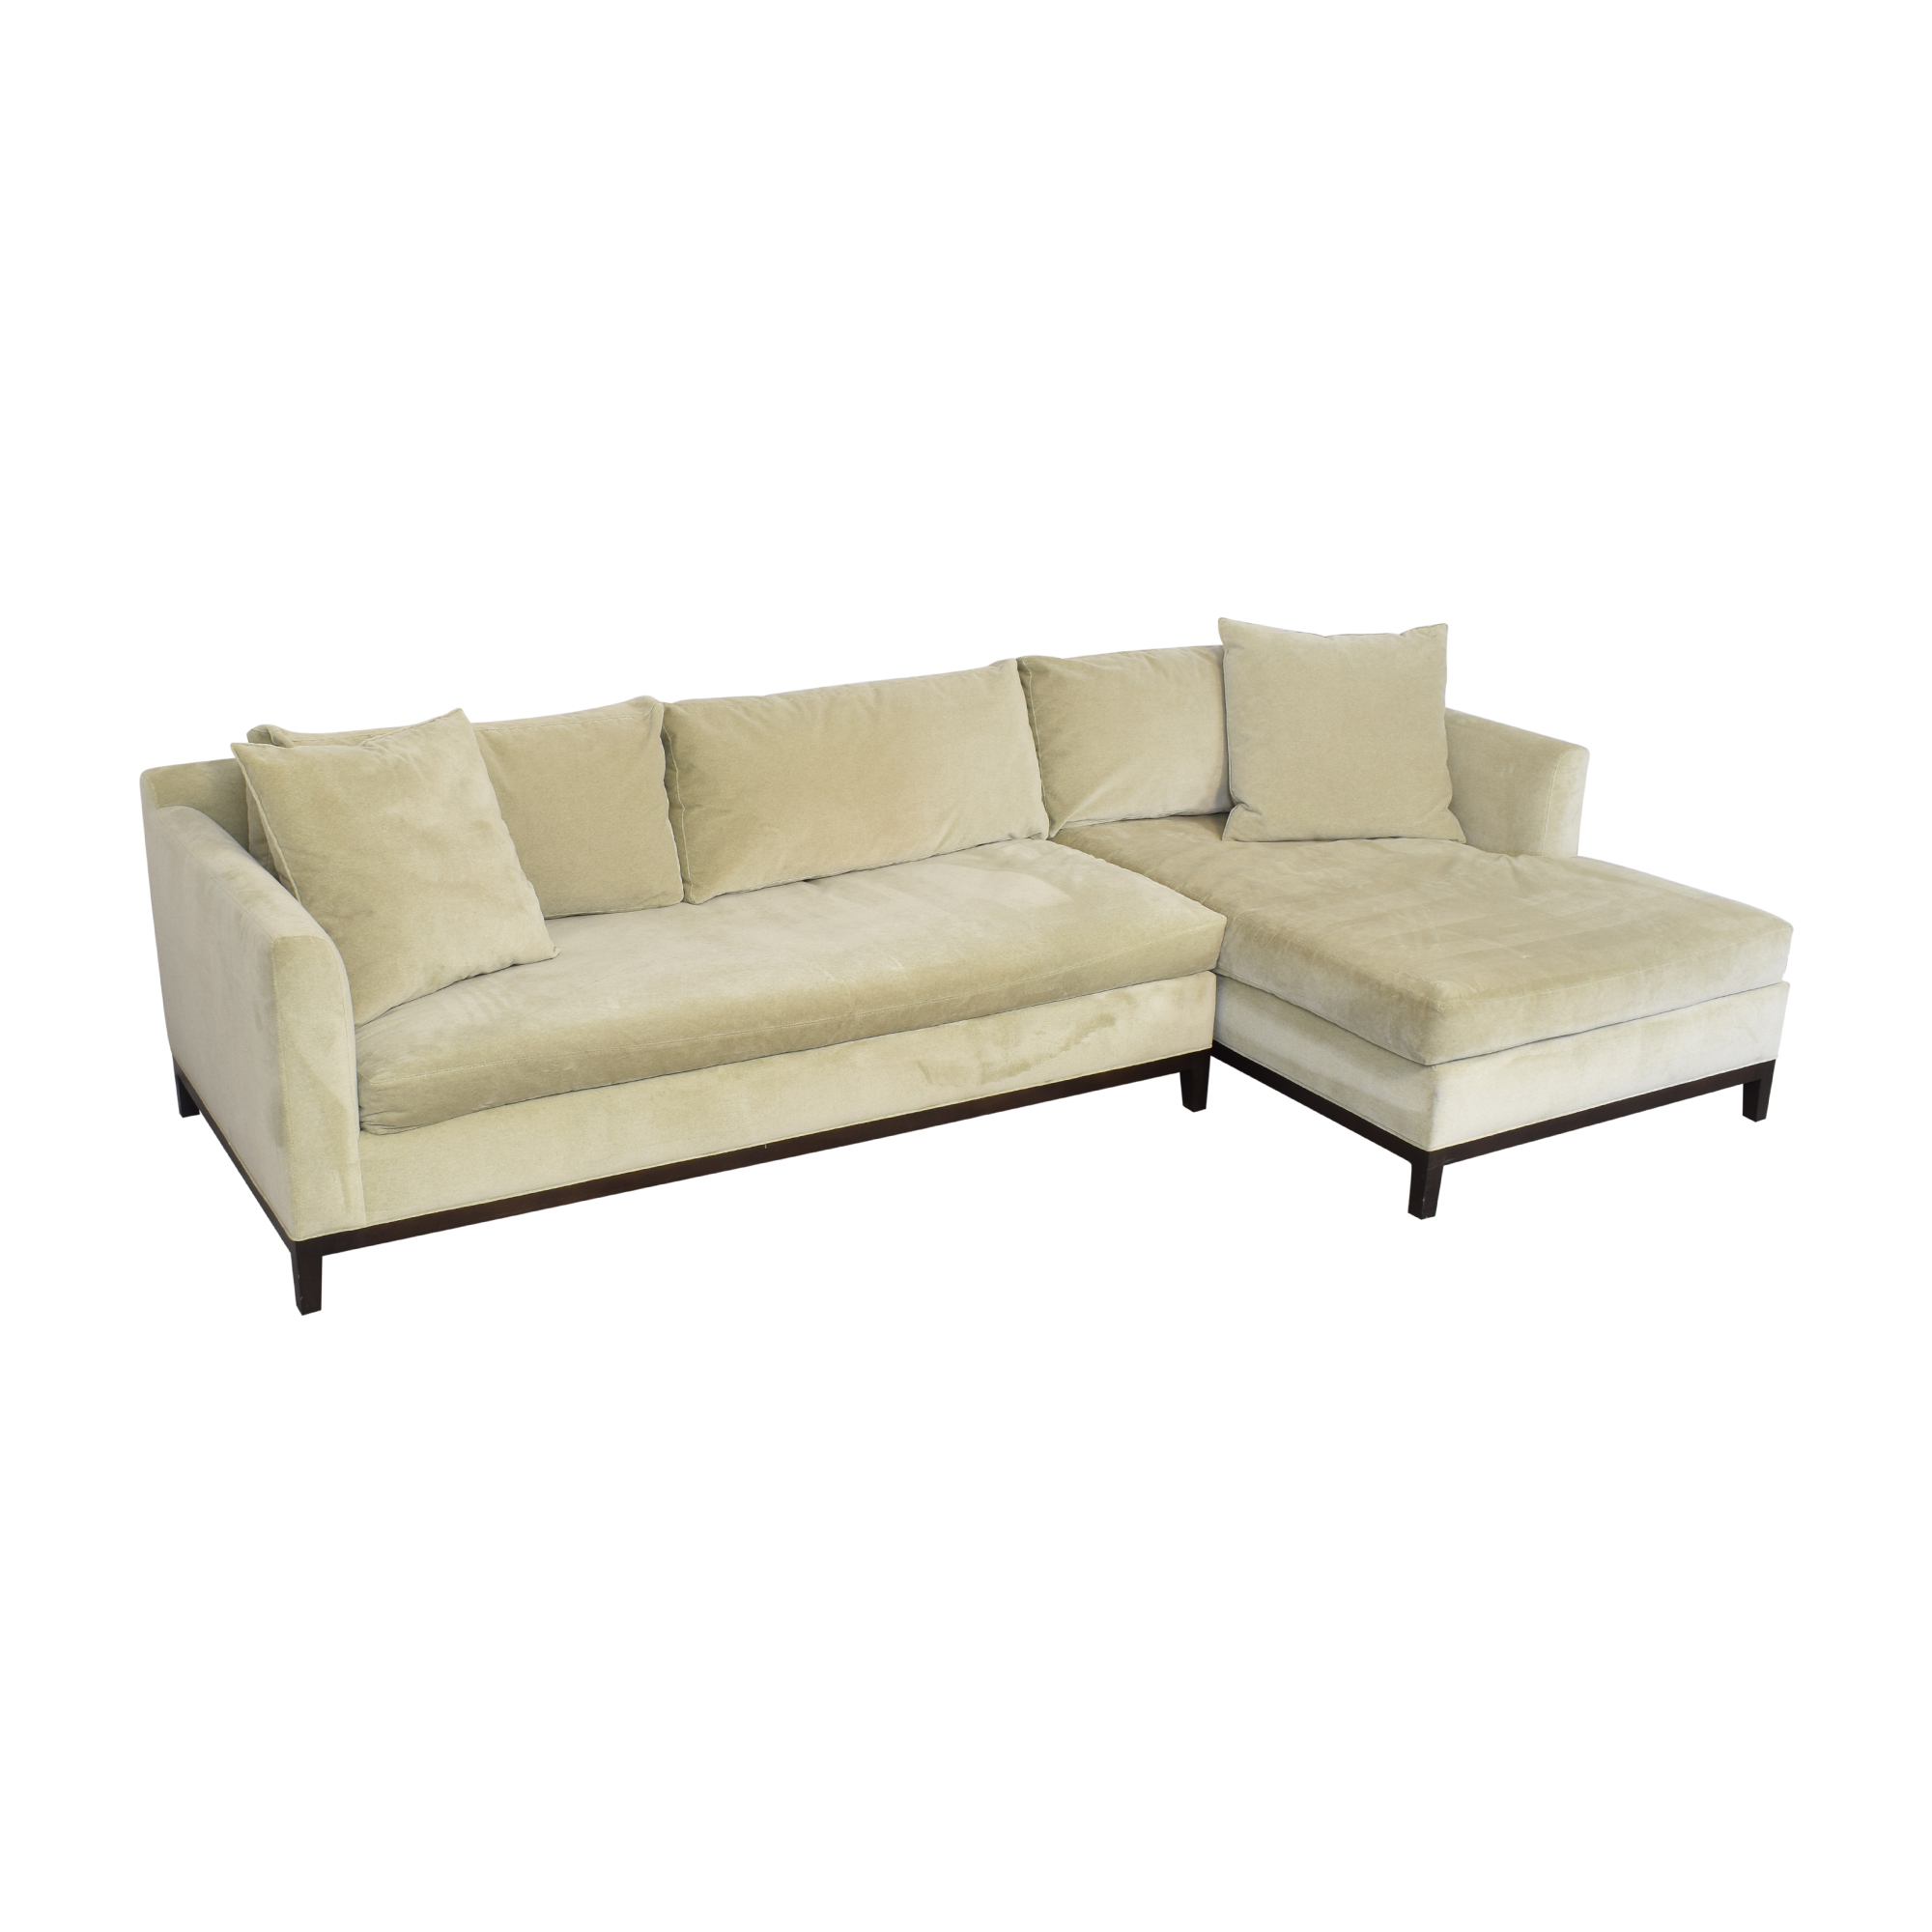 Cisco Brothers Cisco Brothers Tristan Sectional Sofa